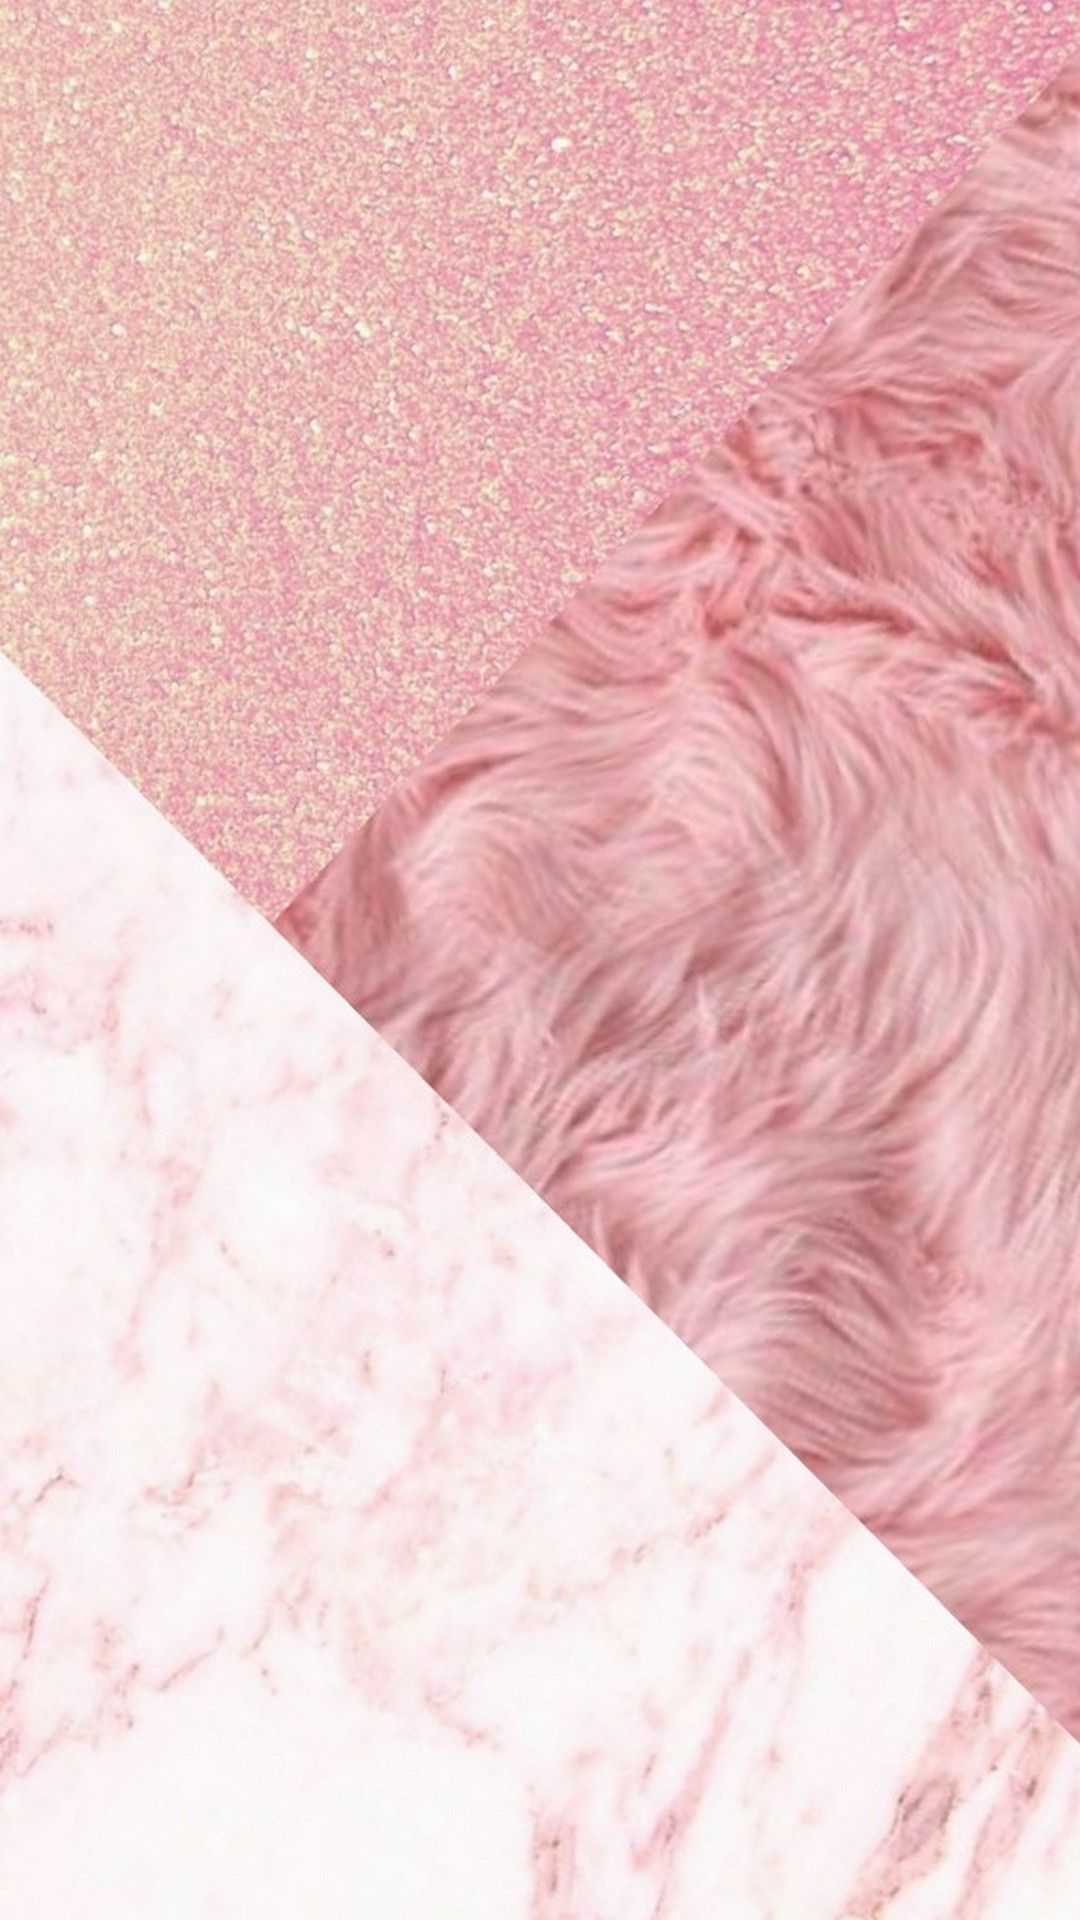 Rose Gold Aesthetic Wallpaper Iphone : aesthetic, wallpaper, iphone, Aesthetic, Wallpapers, WallpaperDog